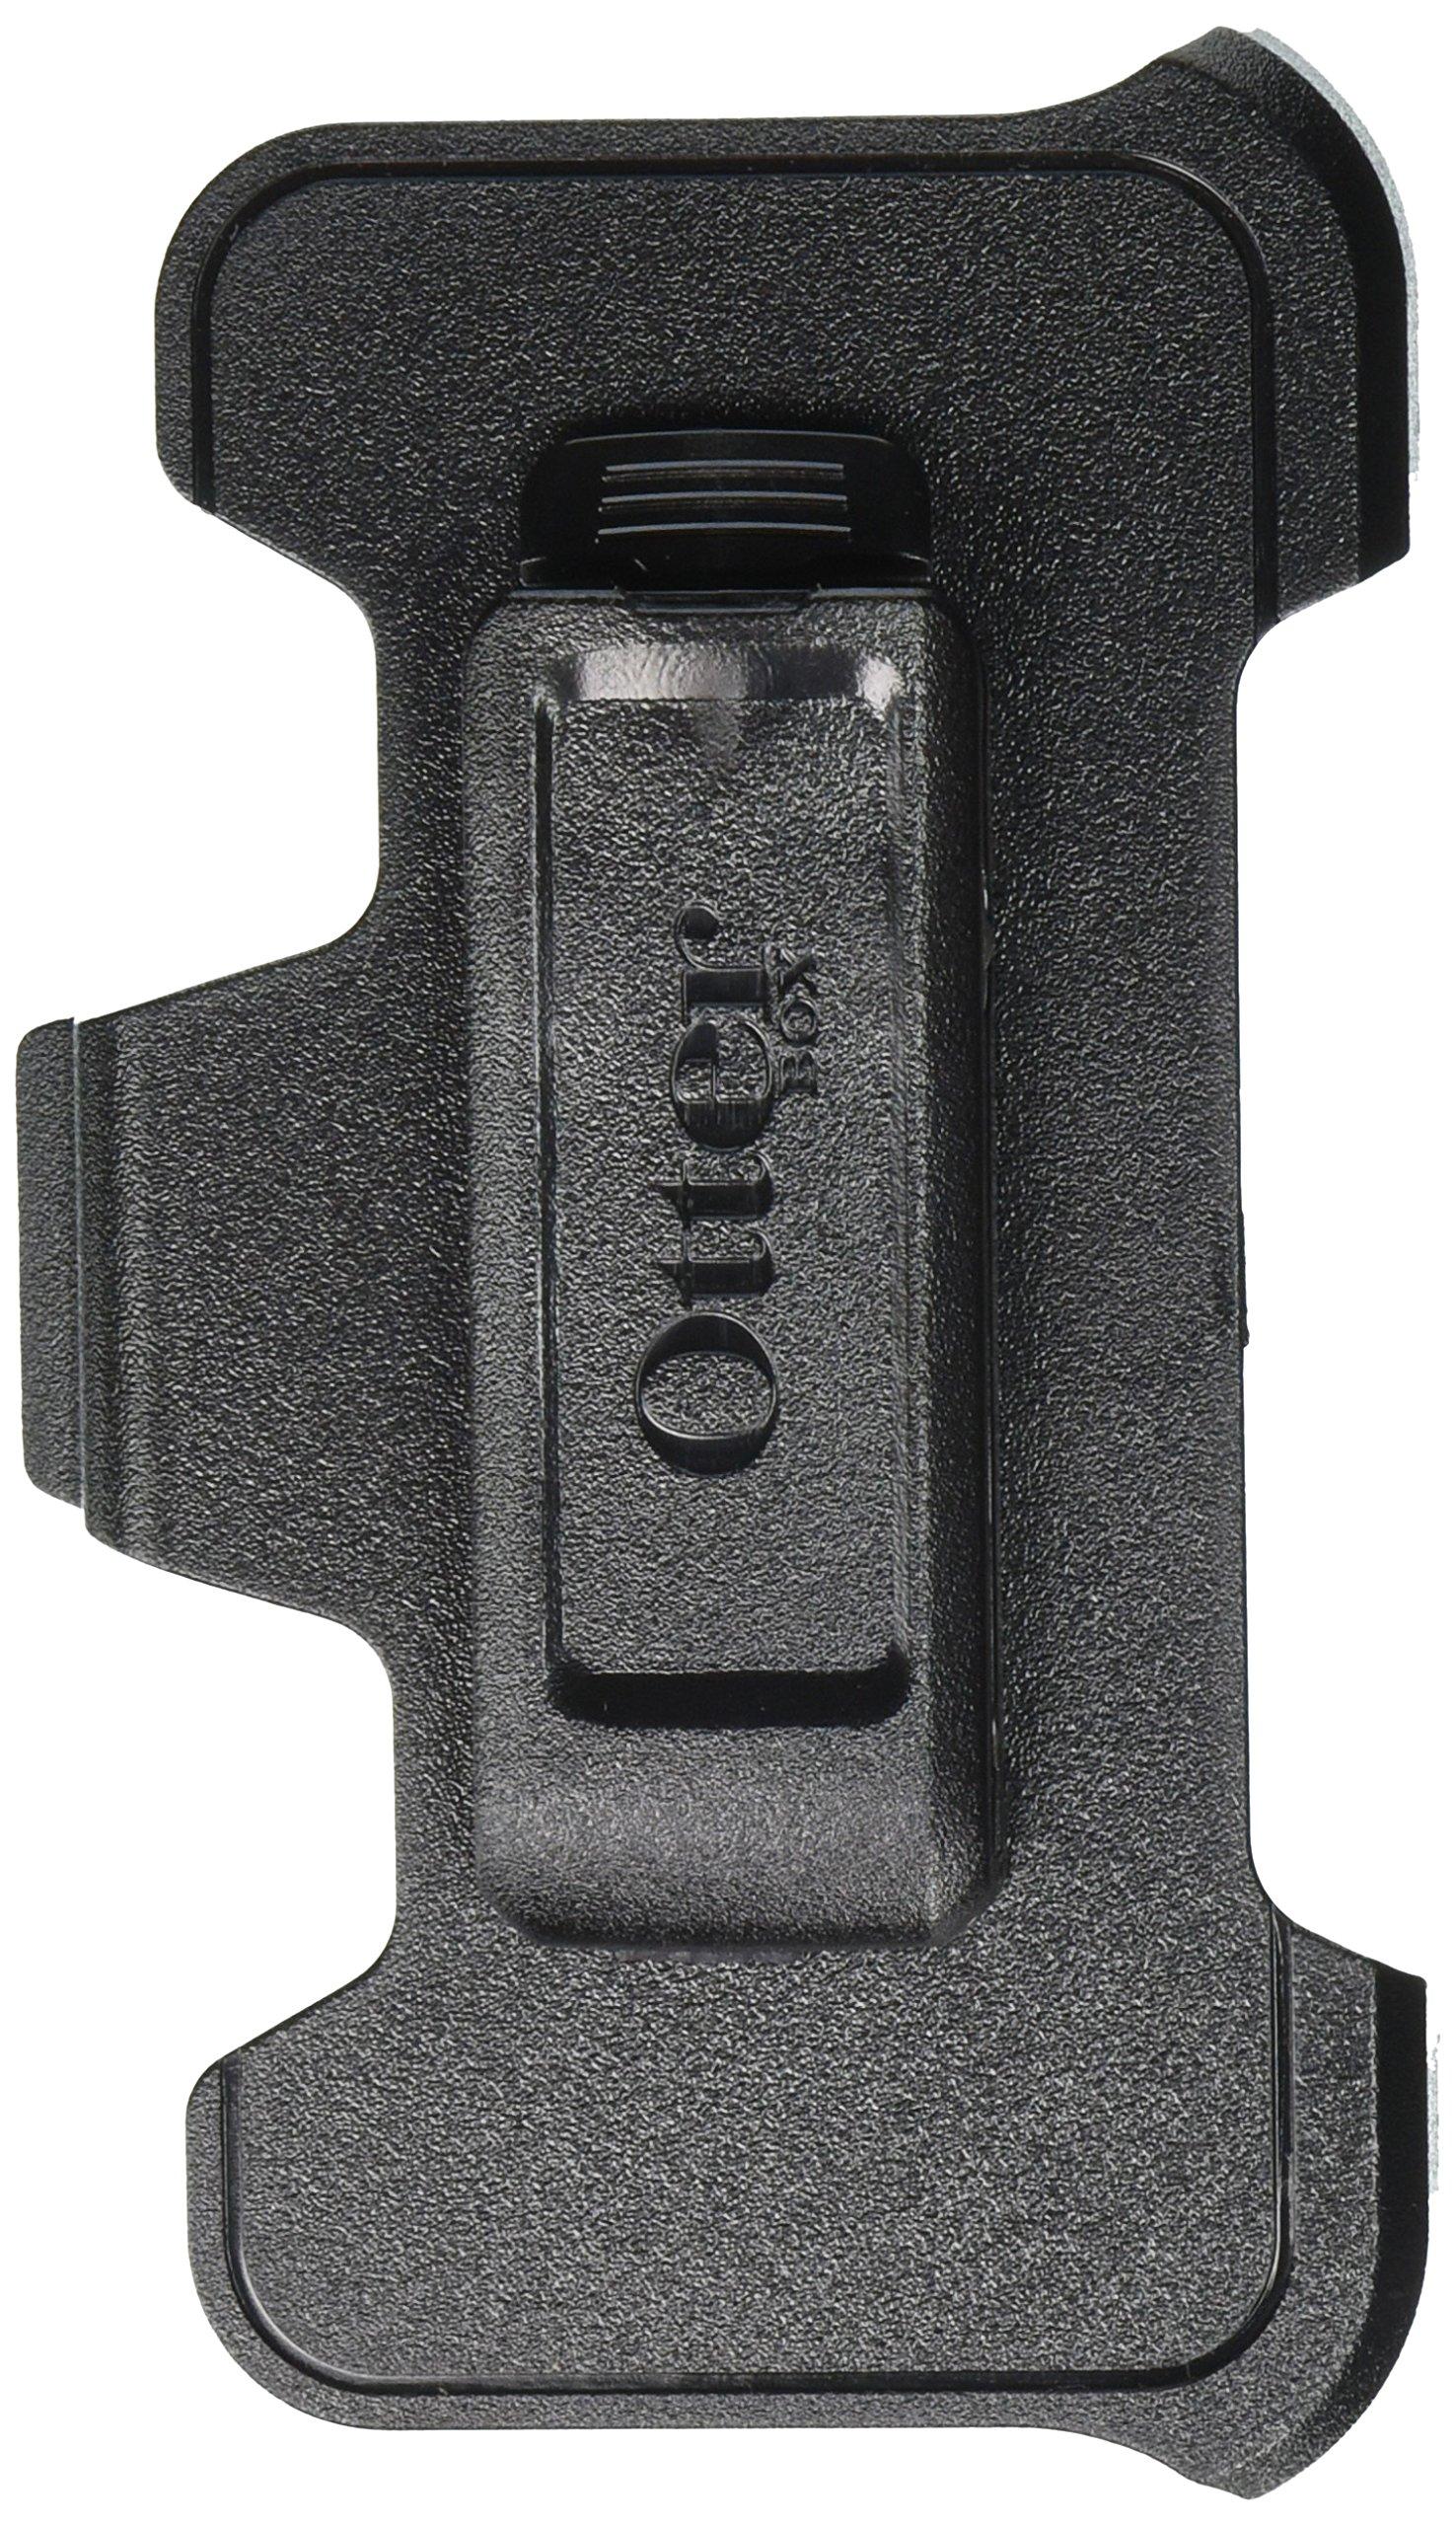 OtterBox Defender Series Holster/Belt Clip for Apple iPhone 5 and iPhone 5s (Black)